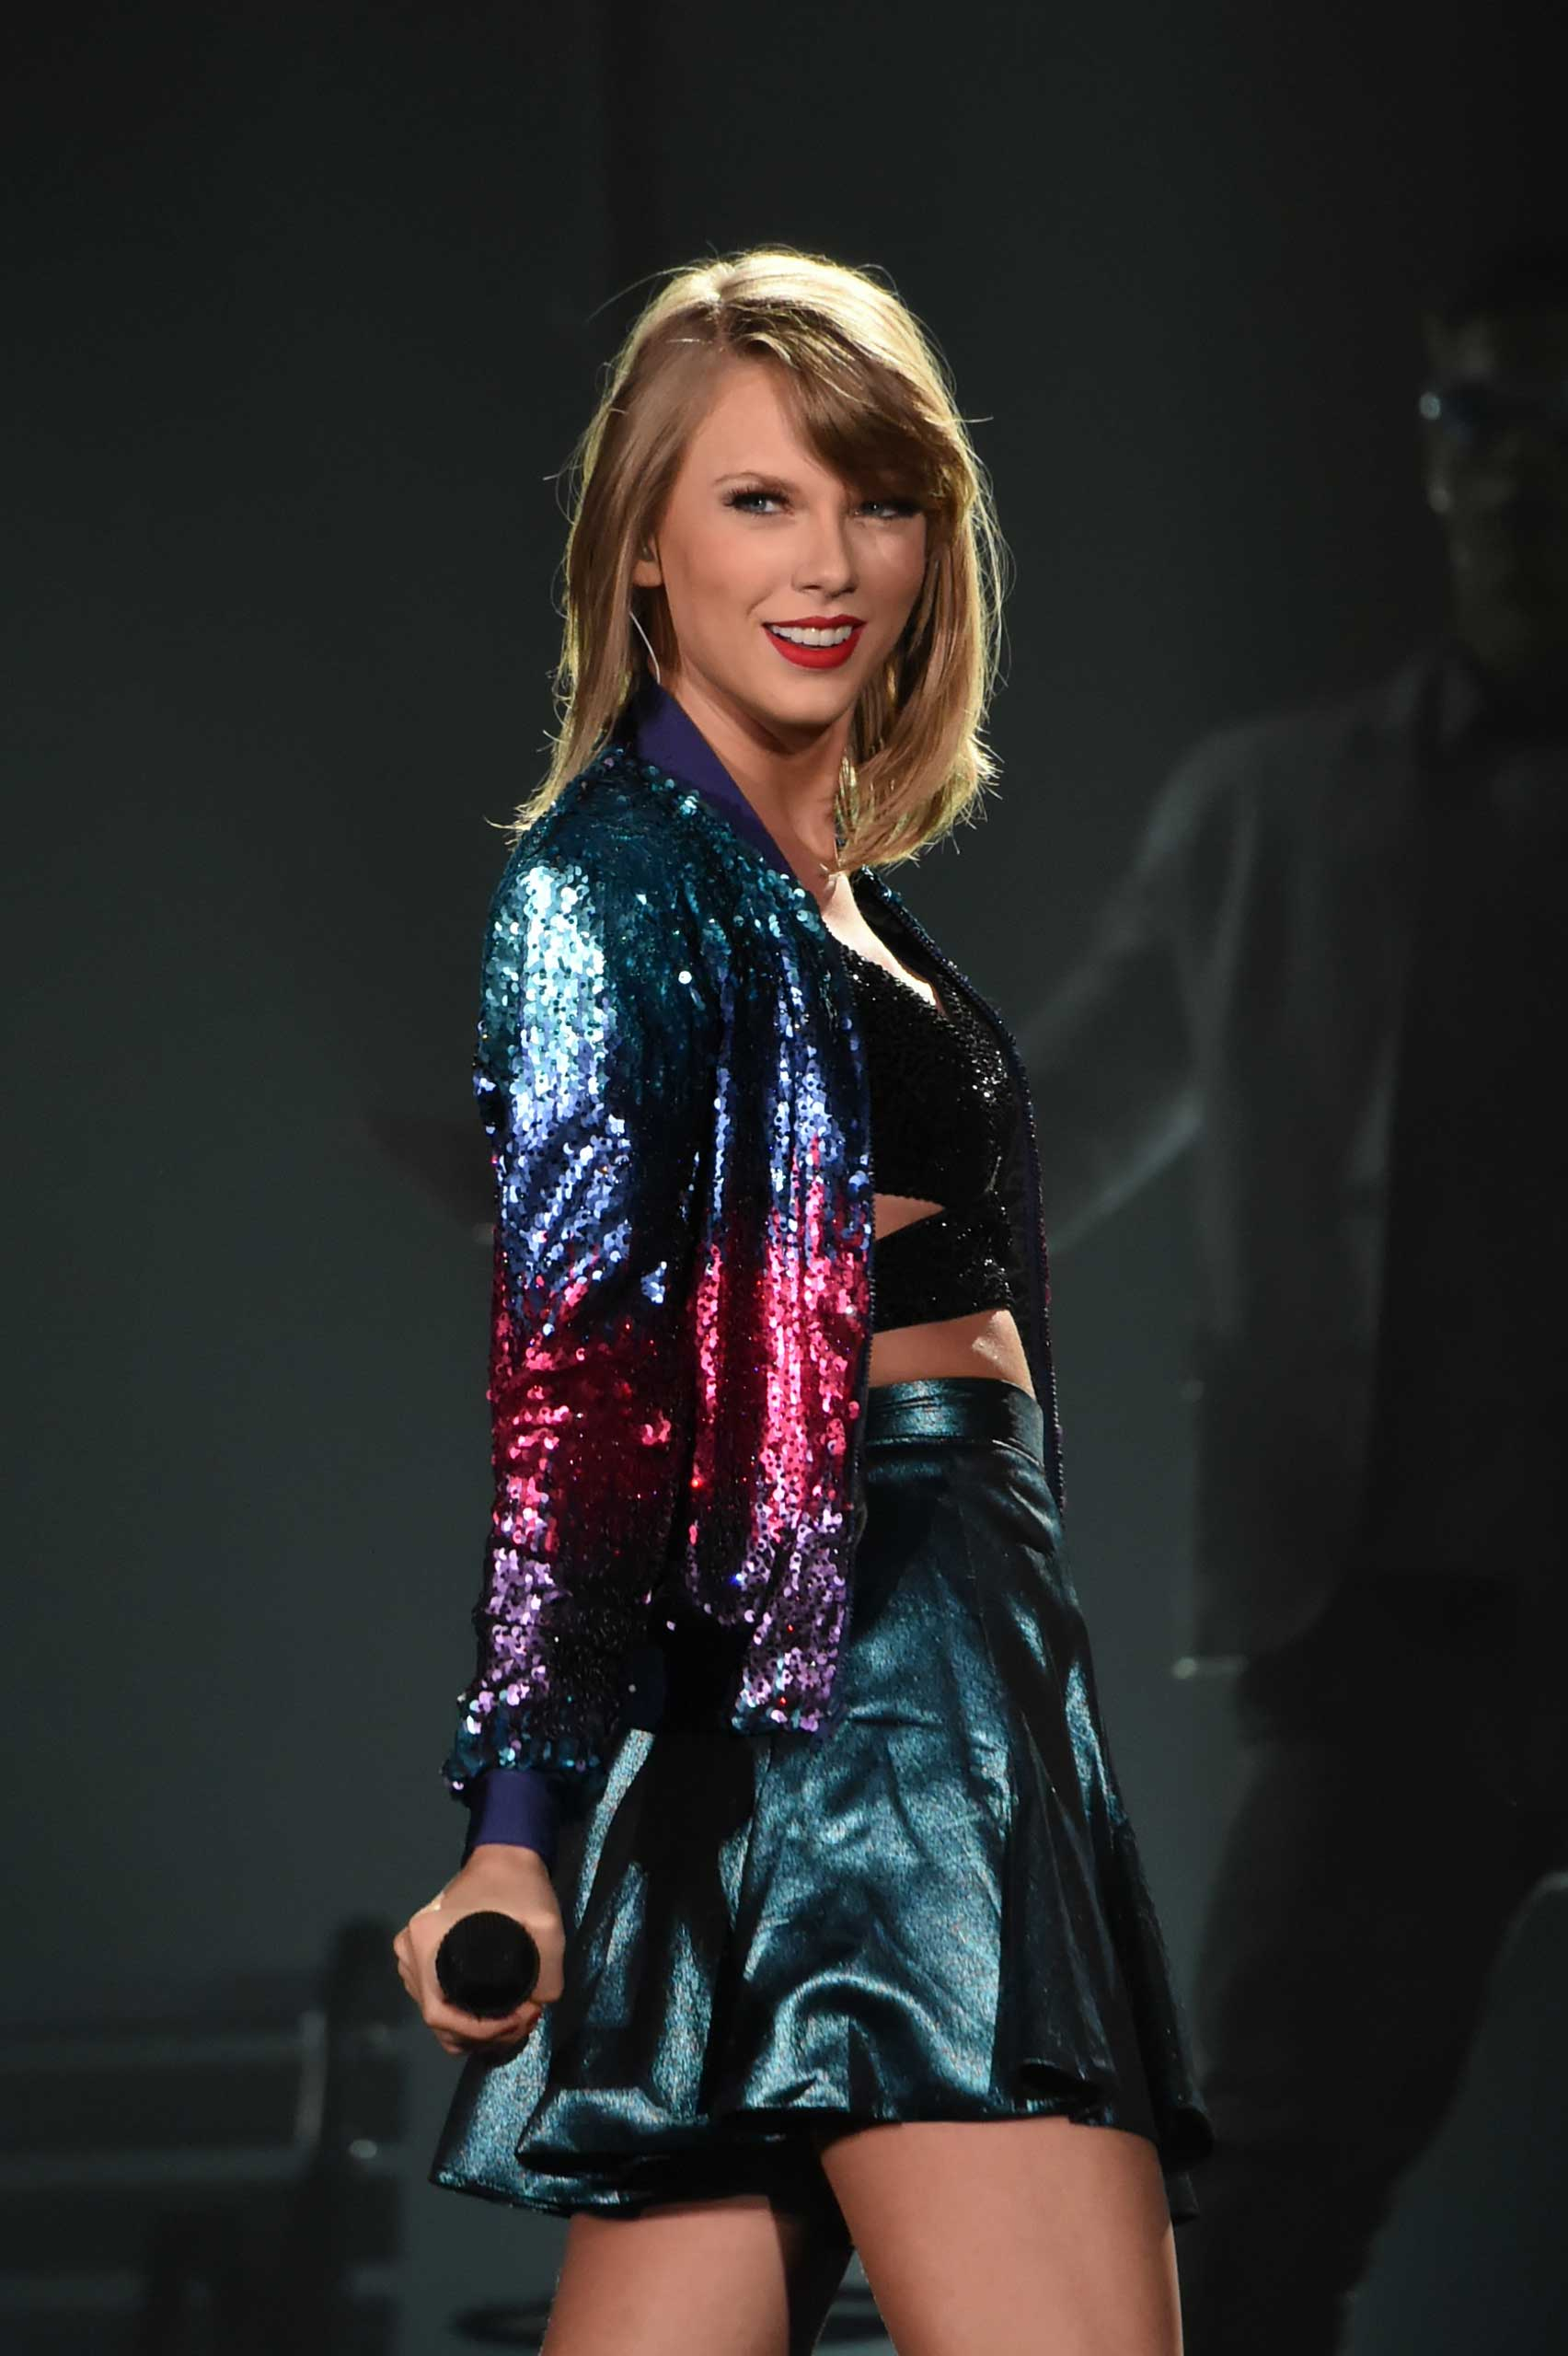 Taylor Swift performs during The 1989 World Tour at Tokyo Dome in Tokyo on May 6, 2015.